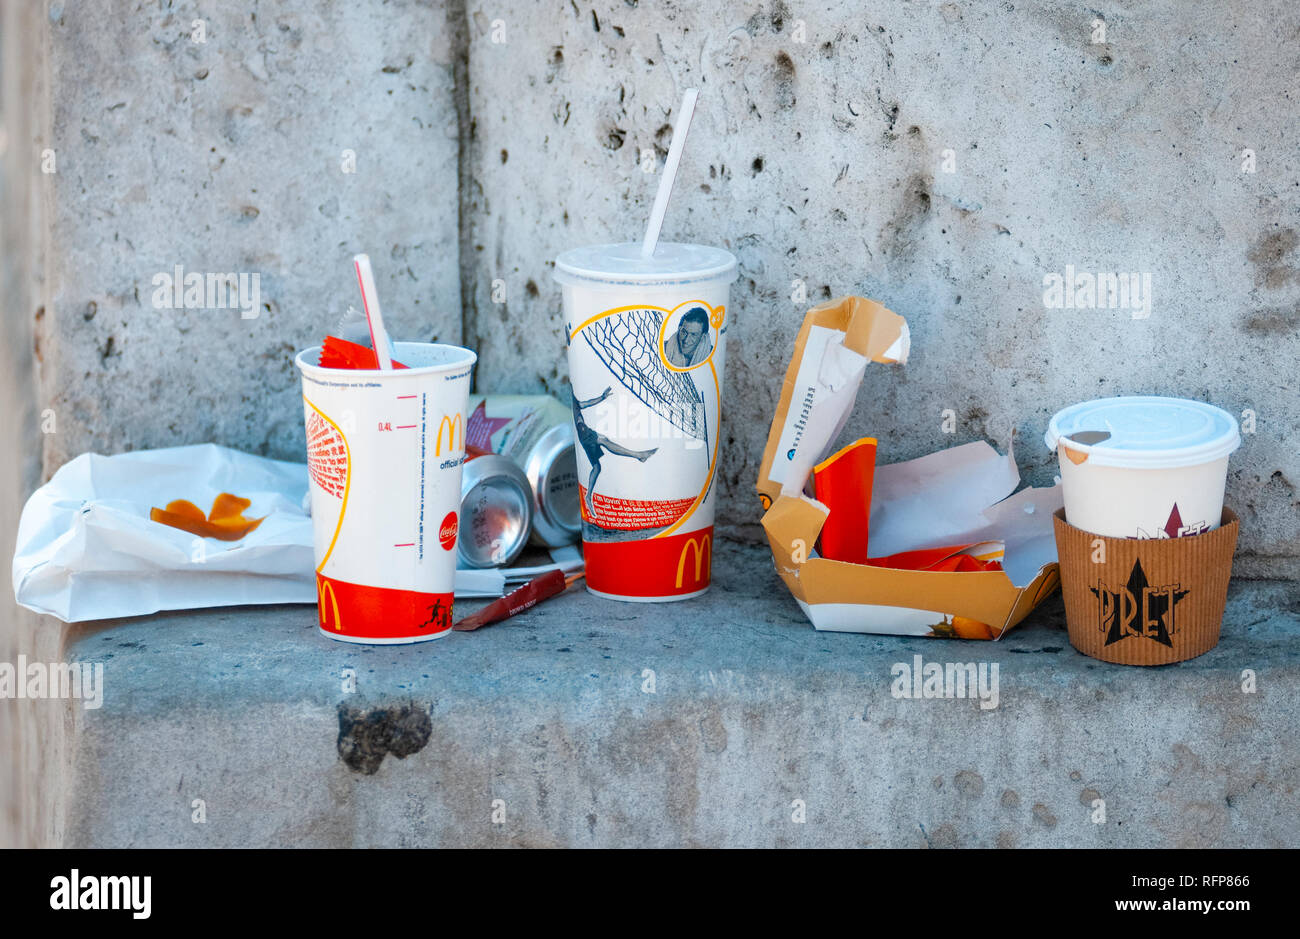 McDonald's take away wrappers left on a wall in the street, Mcdonald's is the worlds biggest chain of fast food restaurants - Stock Image